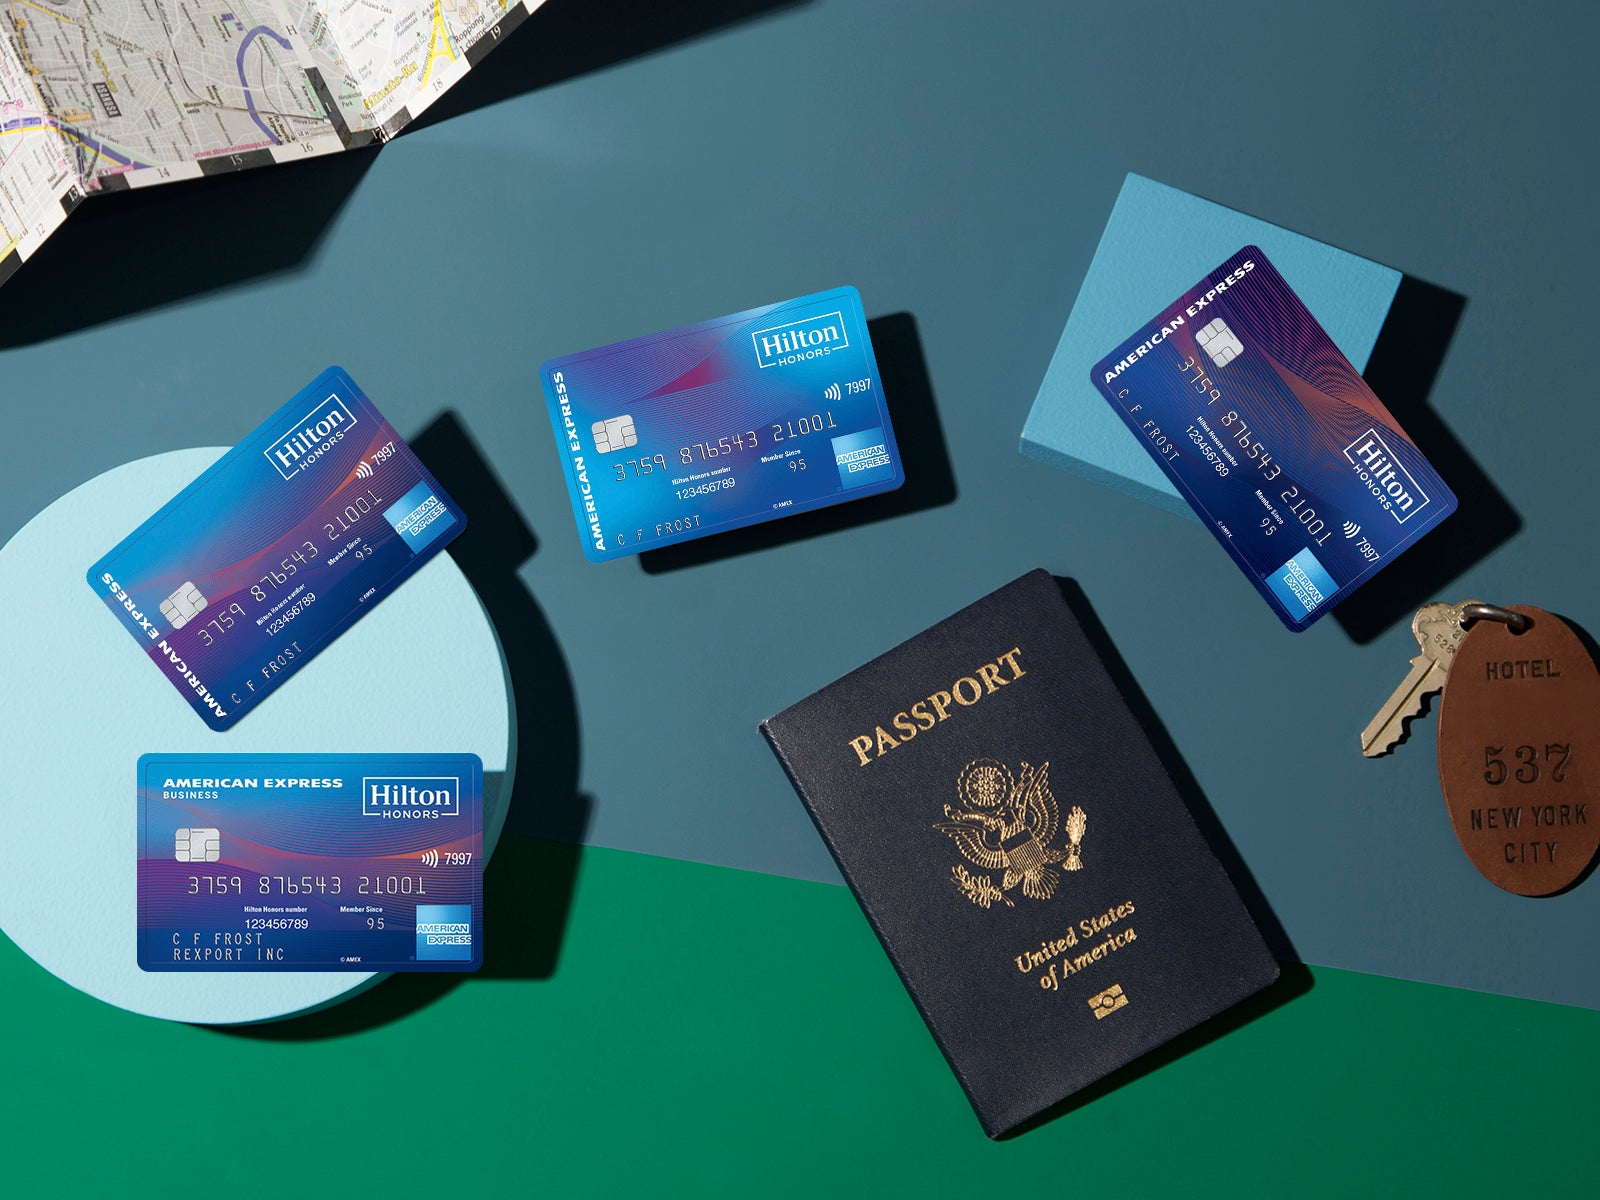 American Express clawing back points from grocery store bonus on Hilton, Marriott and Delta cards